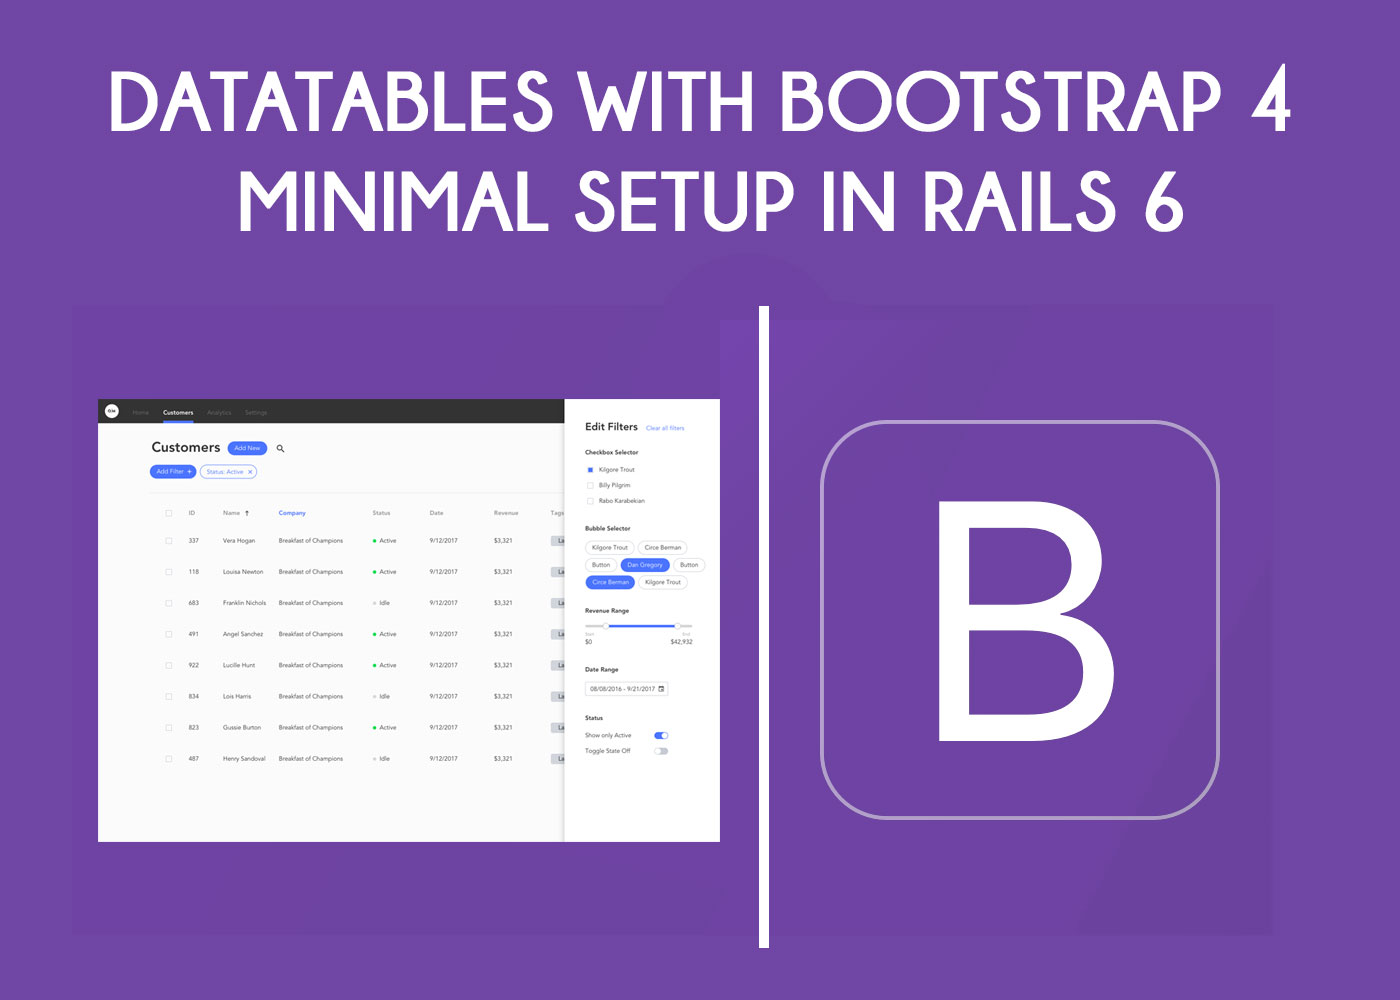 DataTables with Bootstrap 4 Minimal Setup in Rails 6